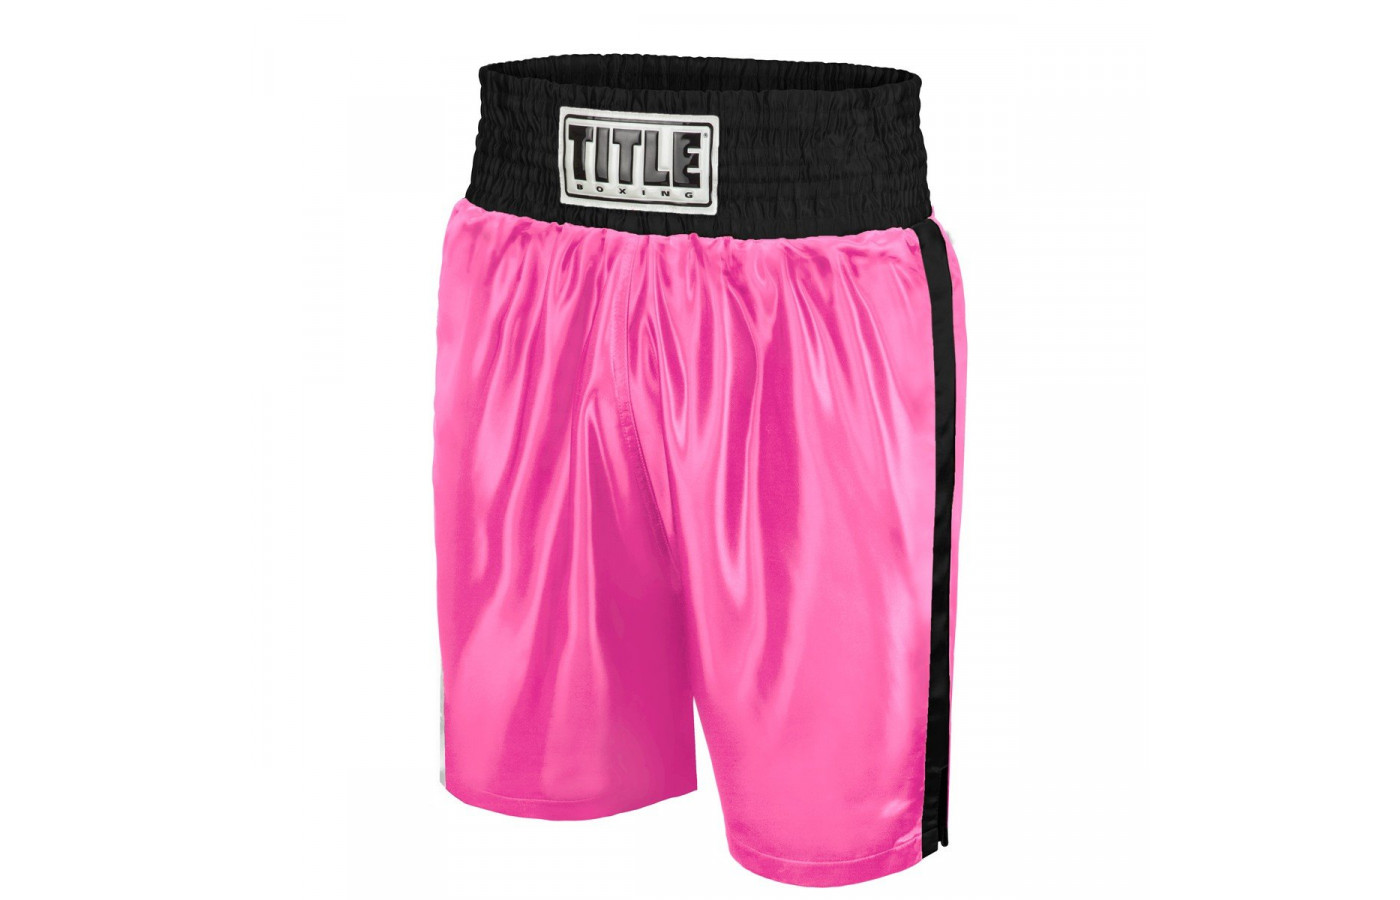 Title trunks pink and black